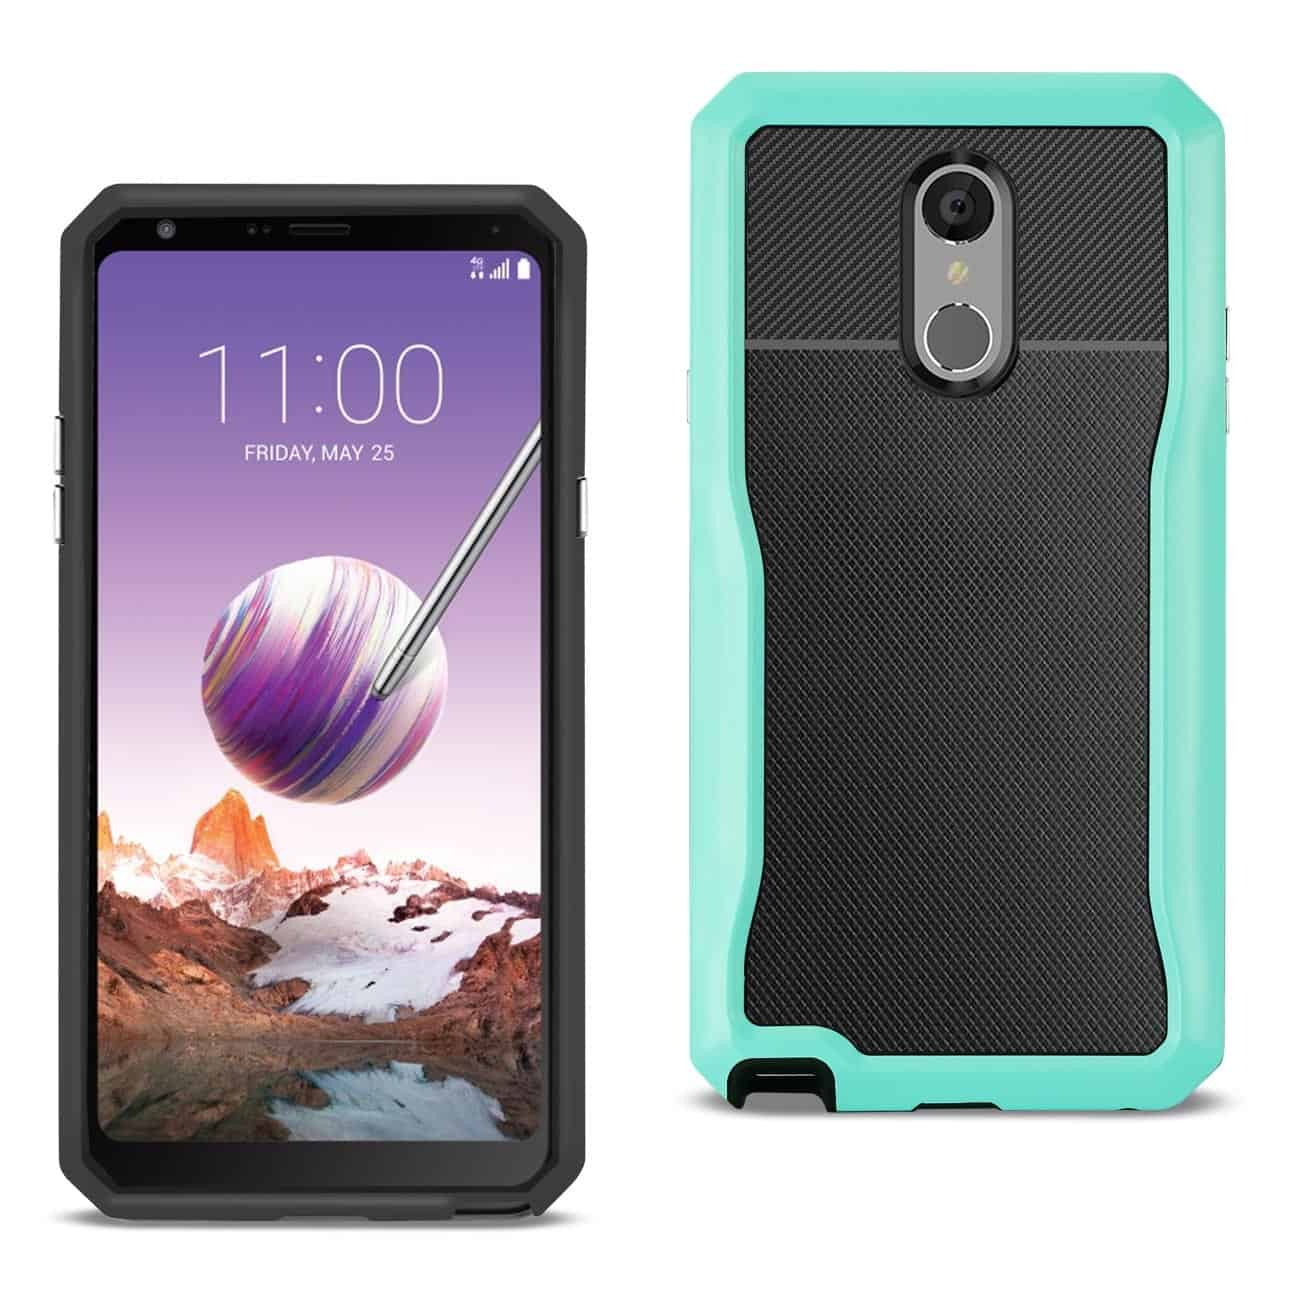 LG STYLO 4 Full Coverage Shockproof Case In Blue